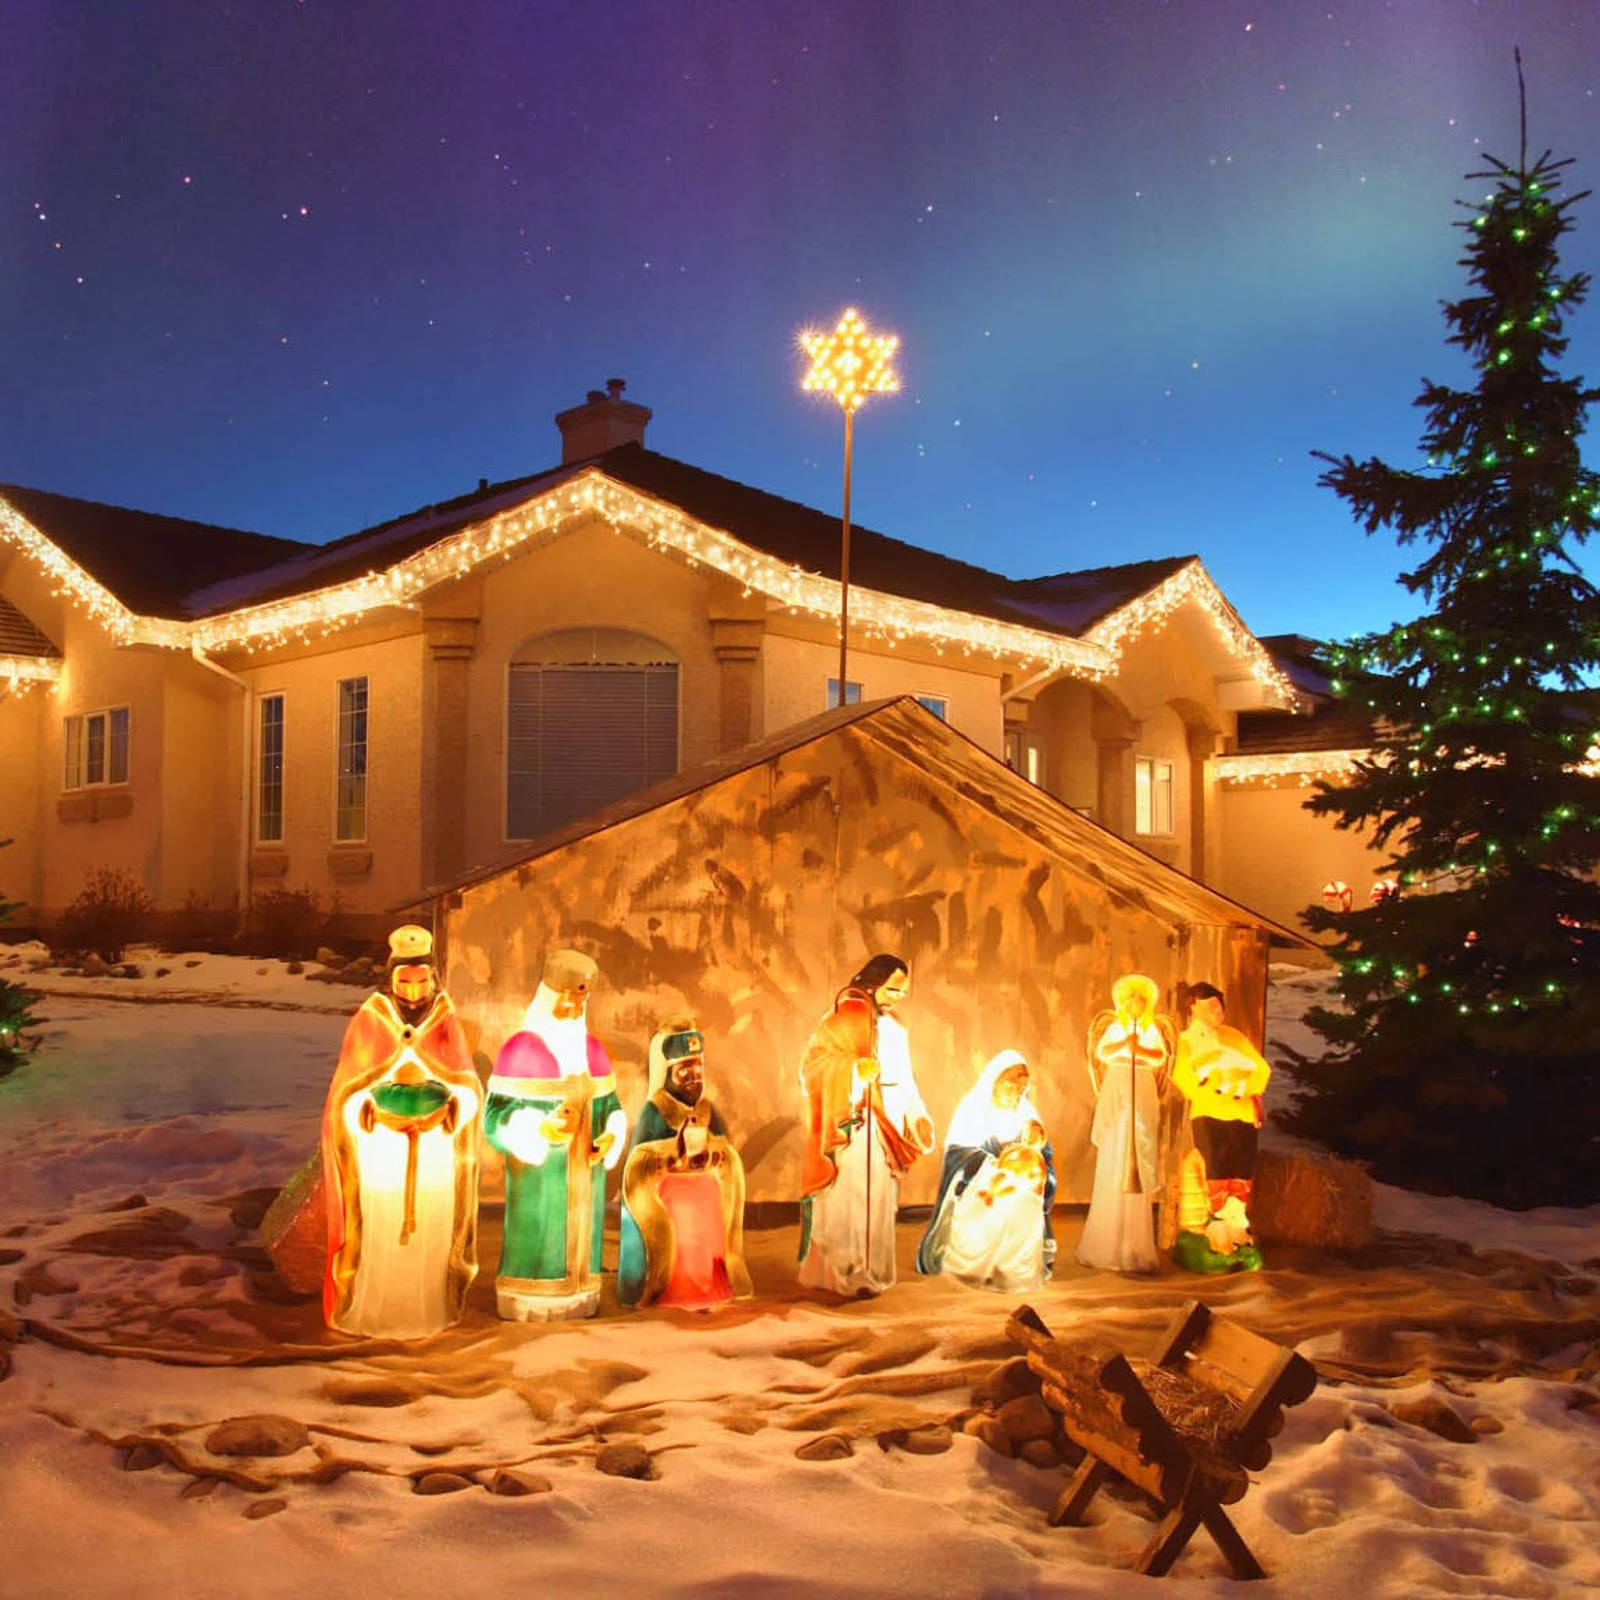 Outdoor Christmas nativity sets scene for christmas decoration ideas